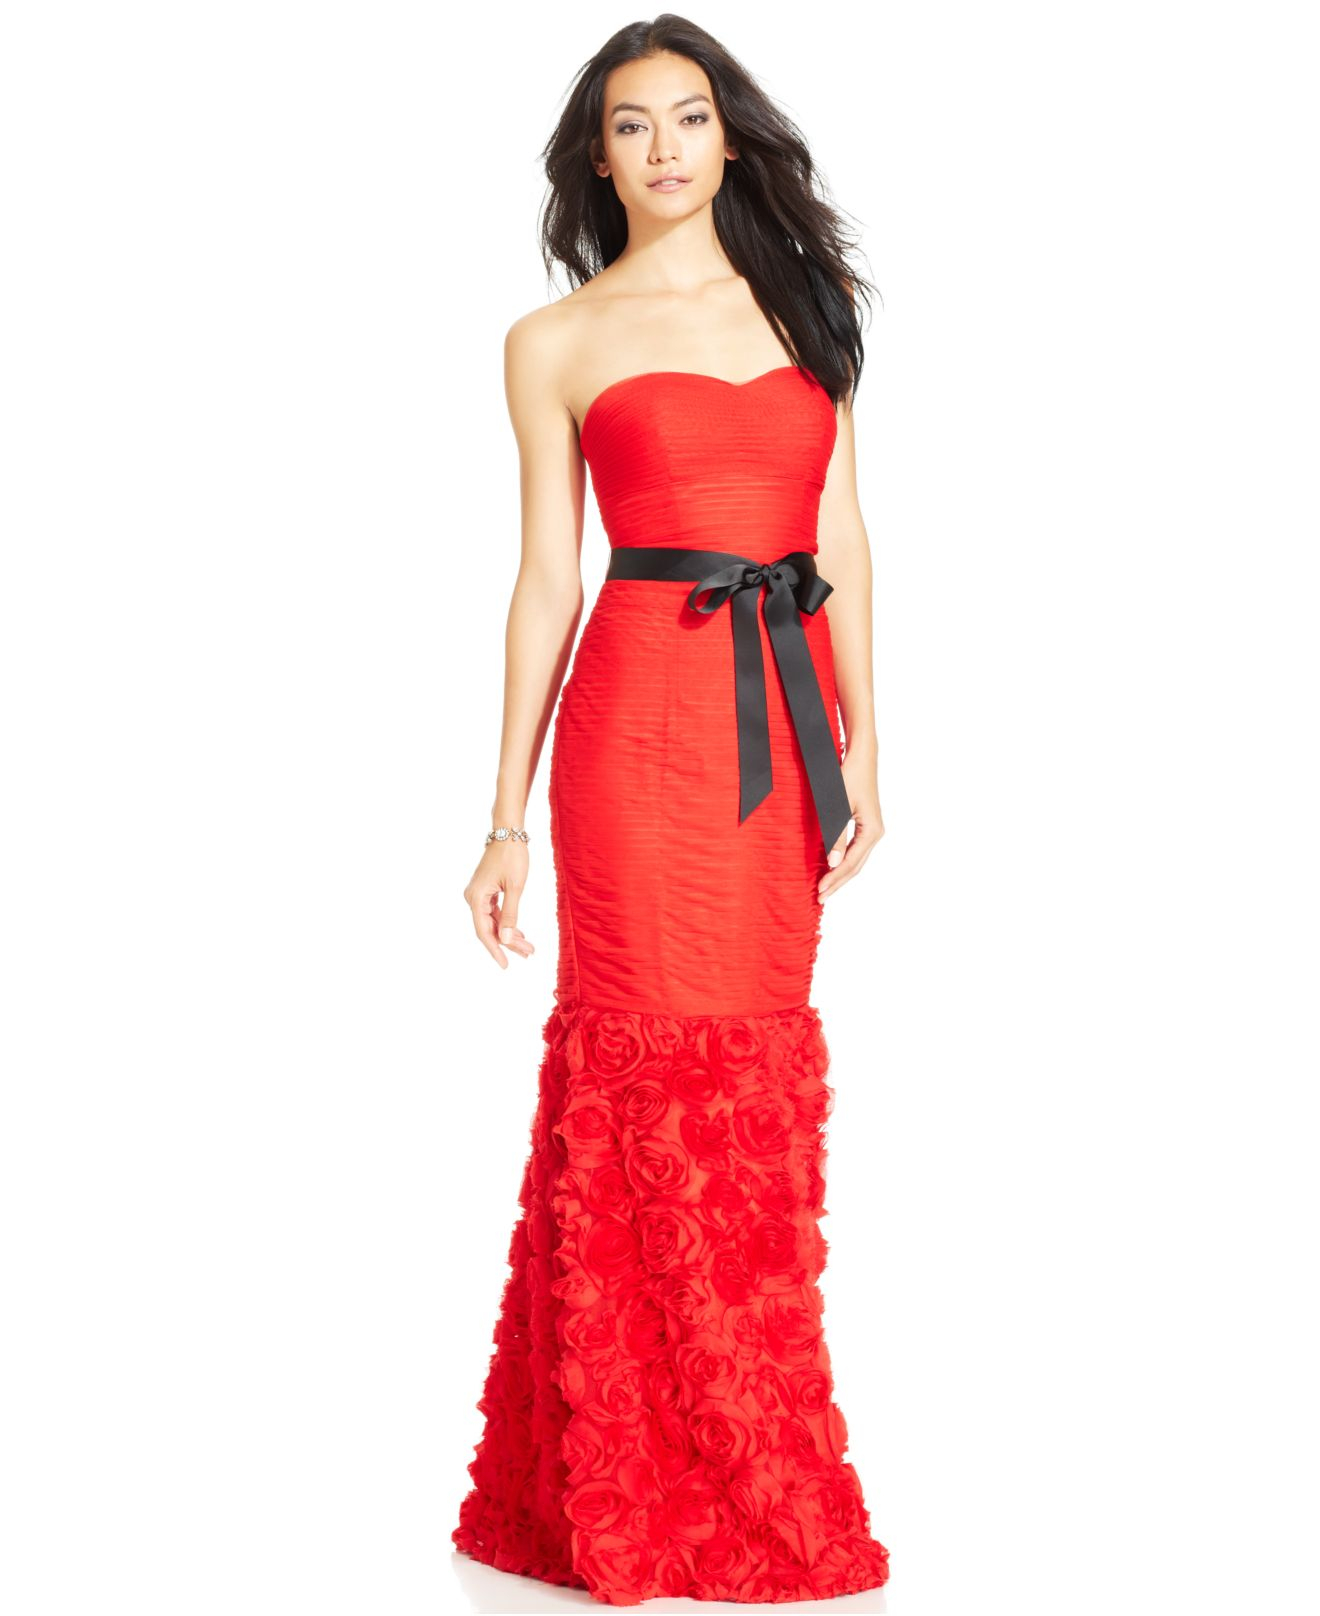 Lyst - Js Collections Strapless Belted Mermaid Gown in Red